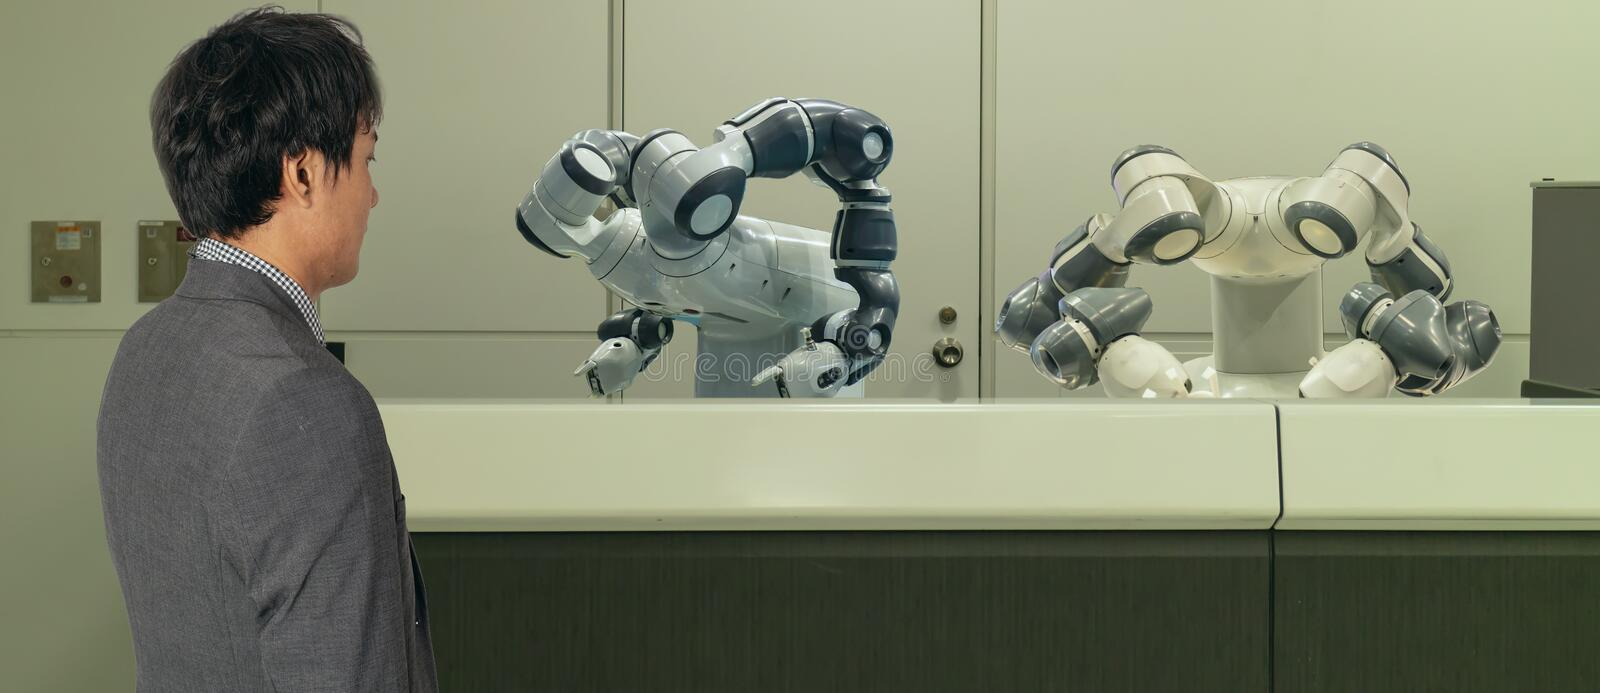 Smart hotel in hospitality industry 4.0 concept, the receptionist robot robot assistant in lobby of hotel or airports always w royalty free stock image